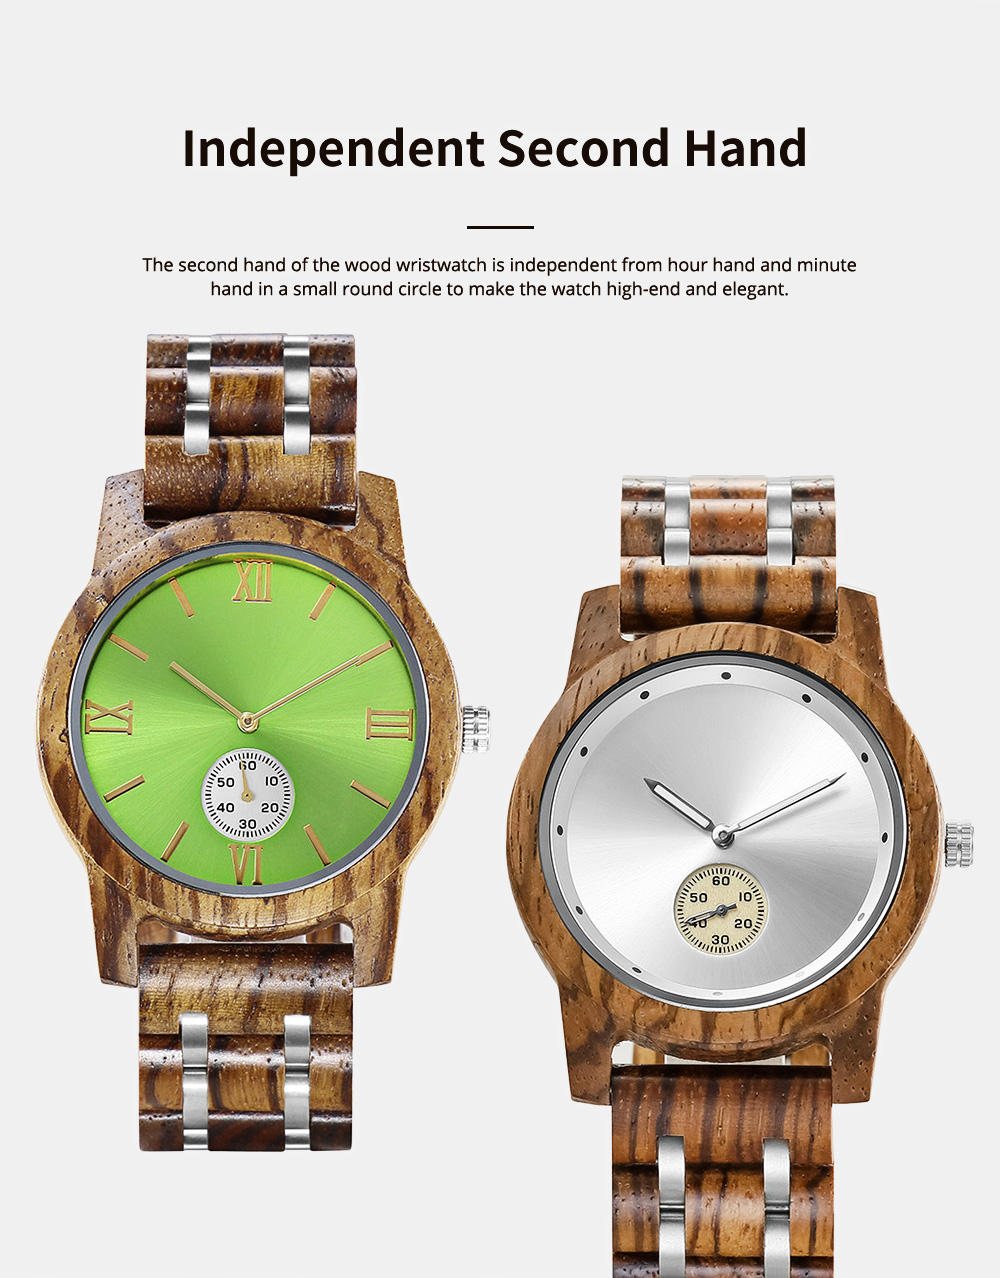 Casual Wood Watch with Wood Watchcase and Bracelet for Unisex Use Waterproof Japanese Quartz Movement Wood-steel-mixed Wristwatch 5